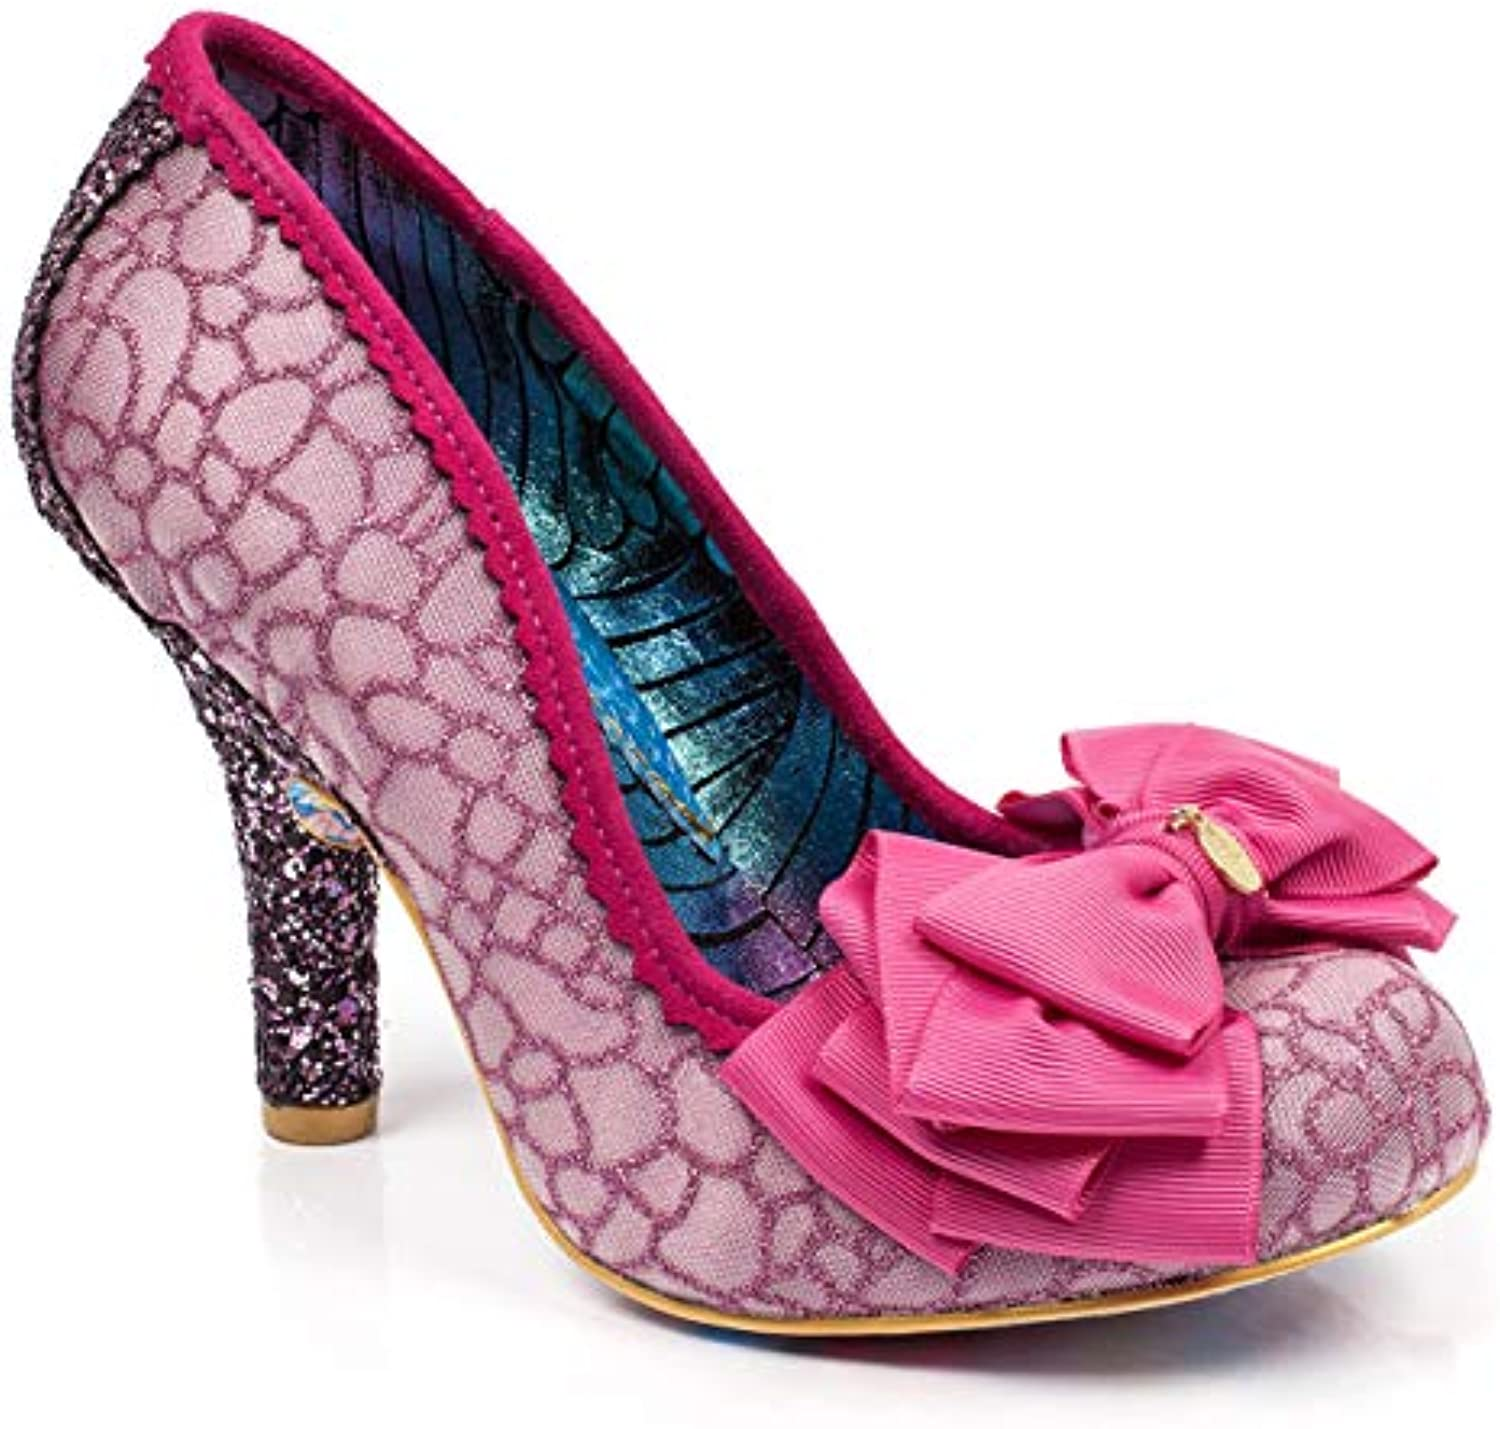 Wo  Irregular Choice Ascot Bridal Party Work Shoes Mid Heel Court Shoes Work - Pink/White - 7.5B07FF7QW44Parent 5557a6